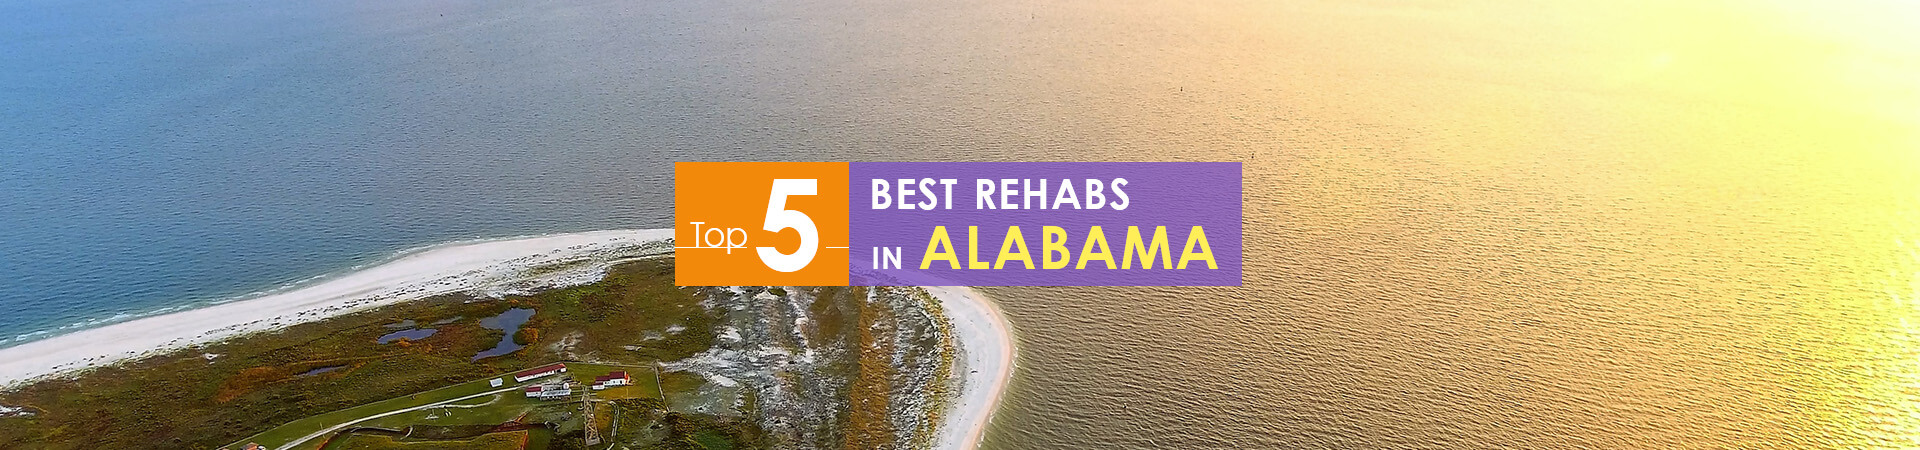 Fort Morgan view and caption of top 5 rehabs in Alabama